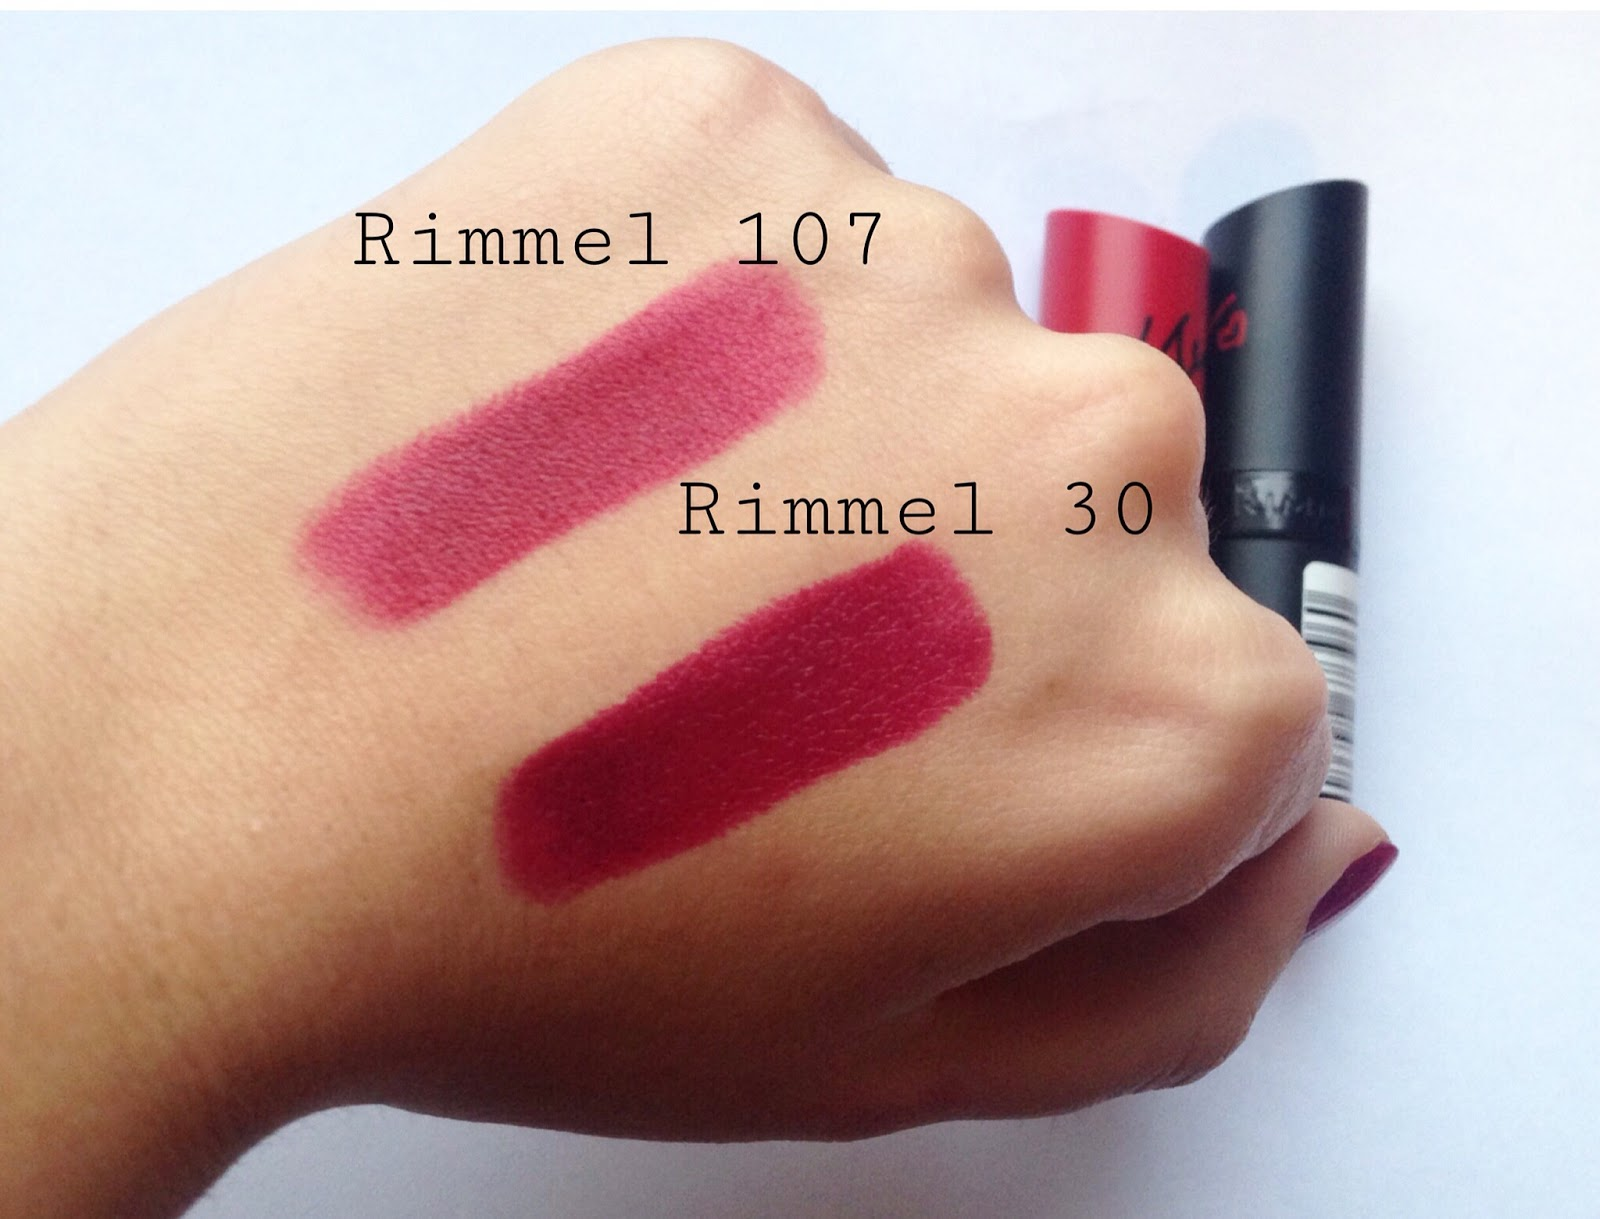 the marketing for rimmel essay In 2012, the advertising standards authority in london banned a diorshow new look mascara print ad for digitally enhancing the lashes of natalie portman in 2010, it banned a rimmel 1-2-3 looks ad.